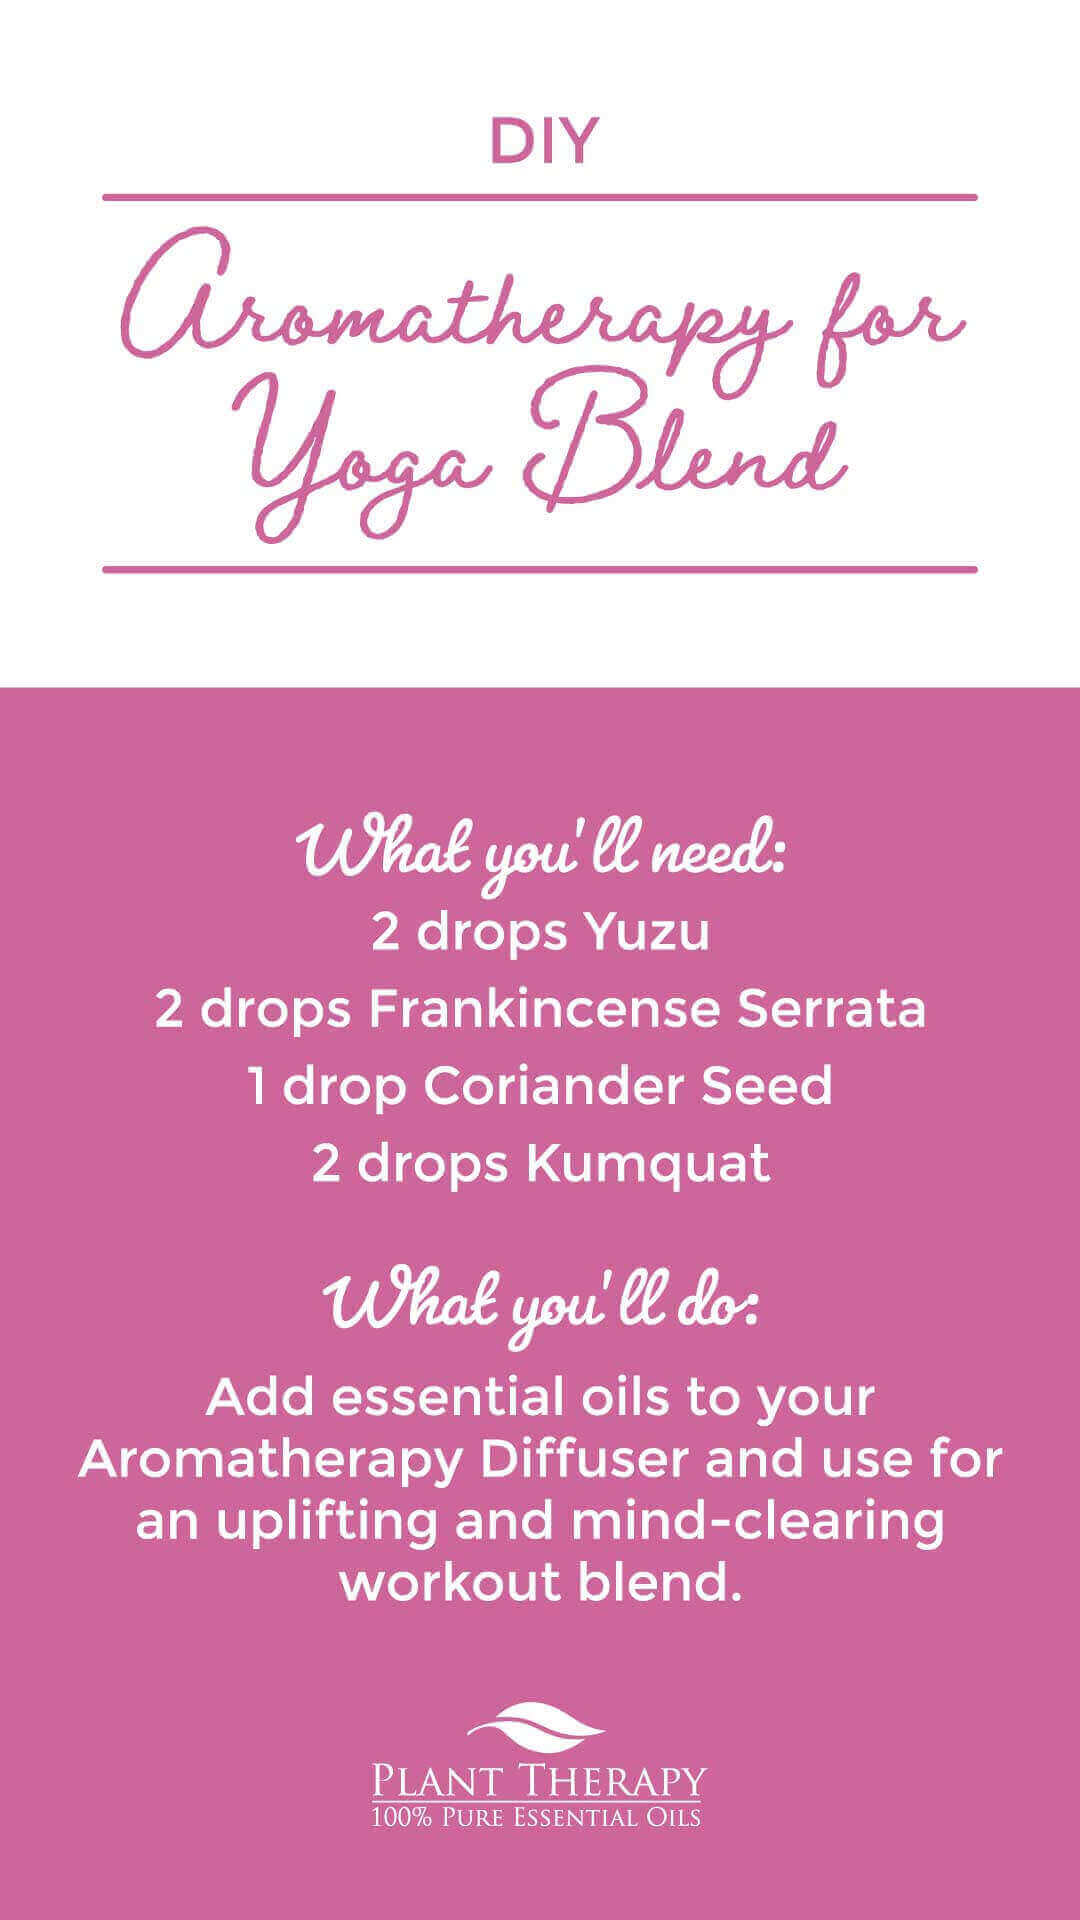 Plant therapy aromatheapy for yoga compressed